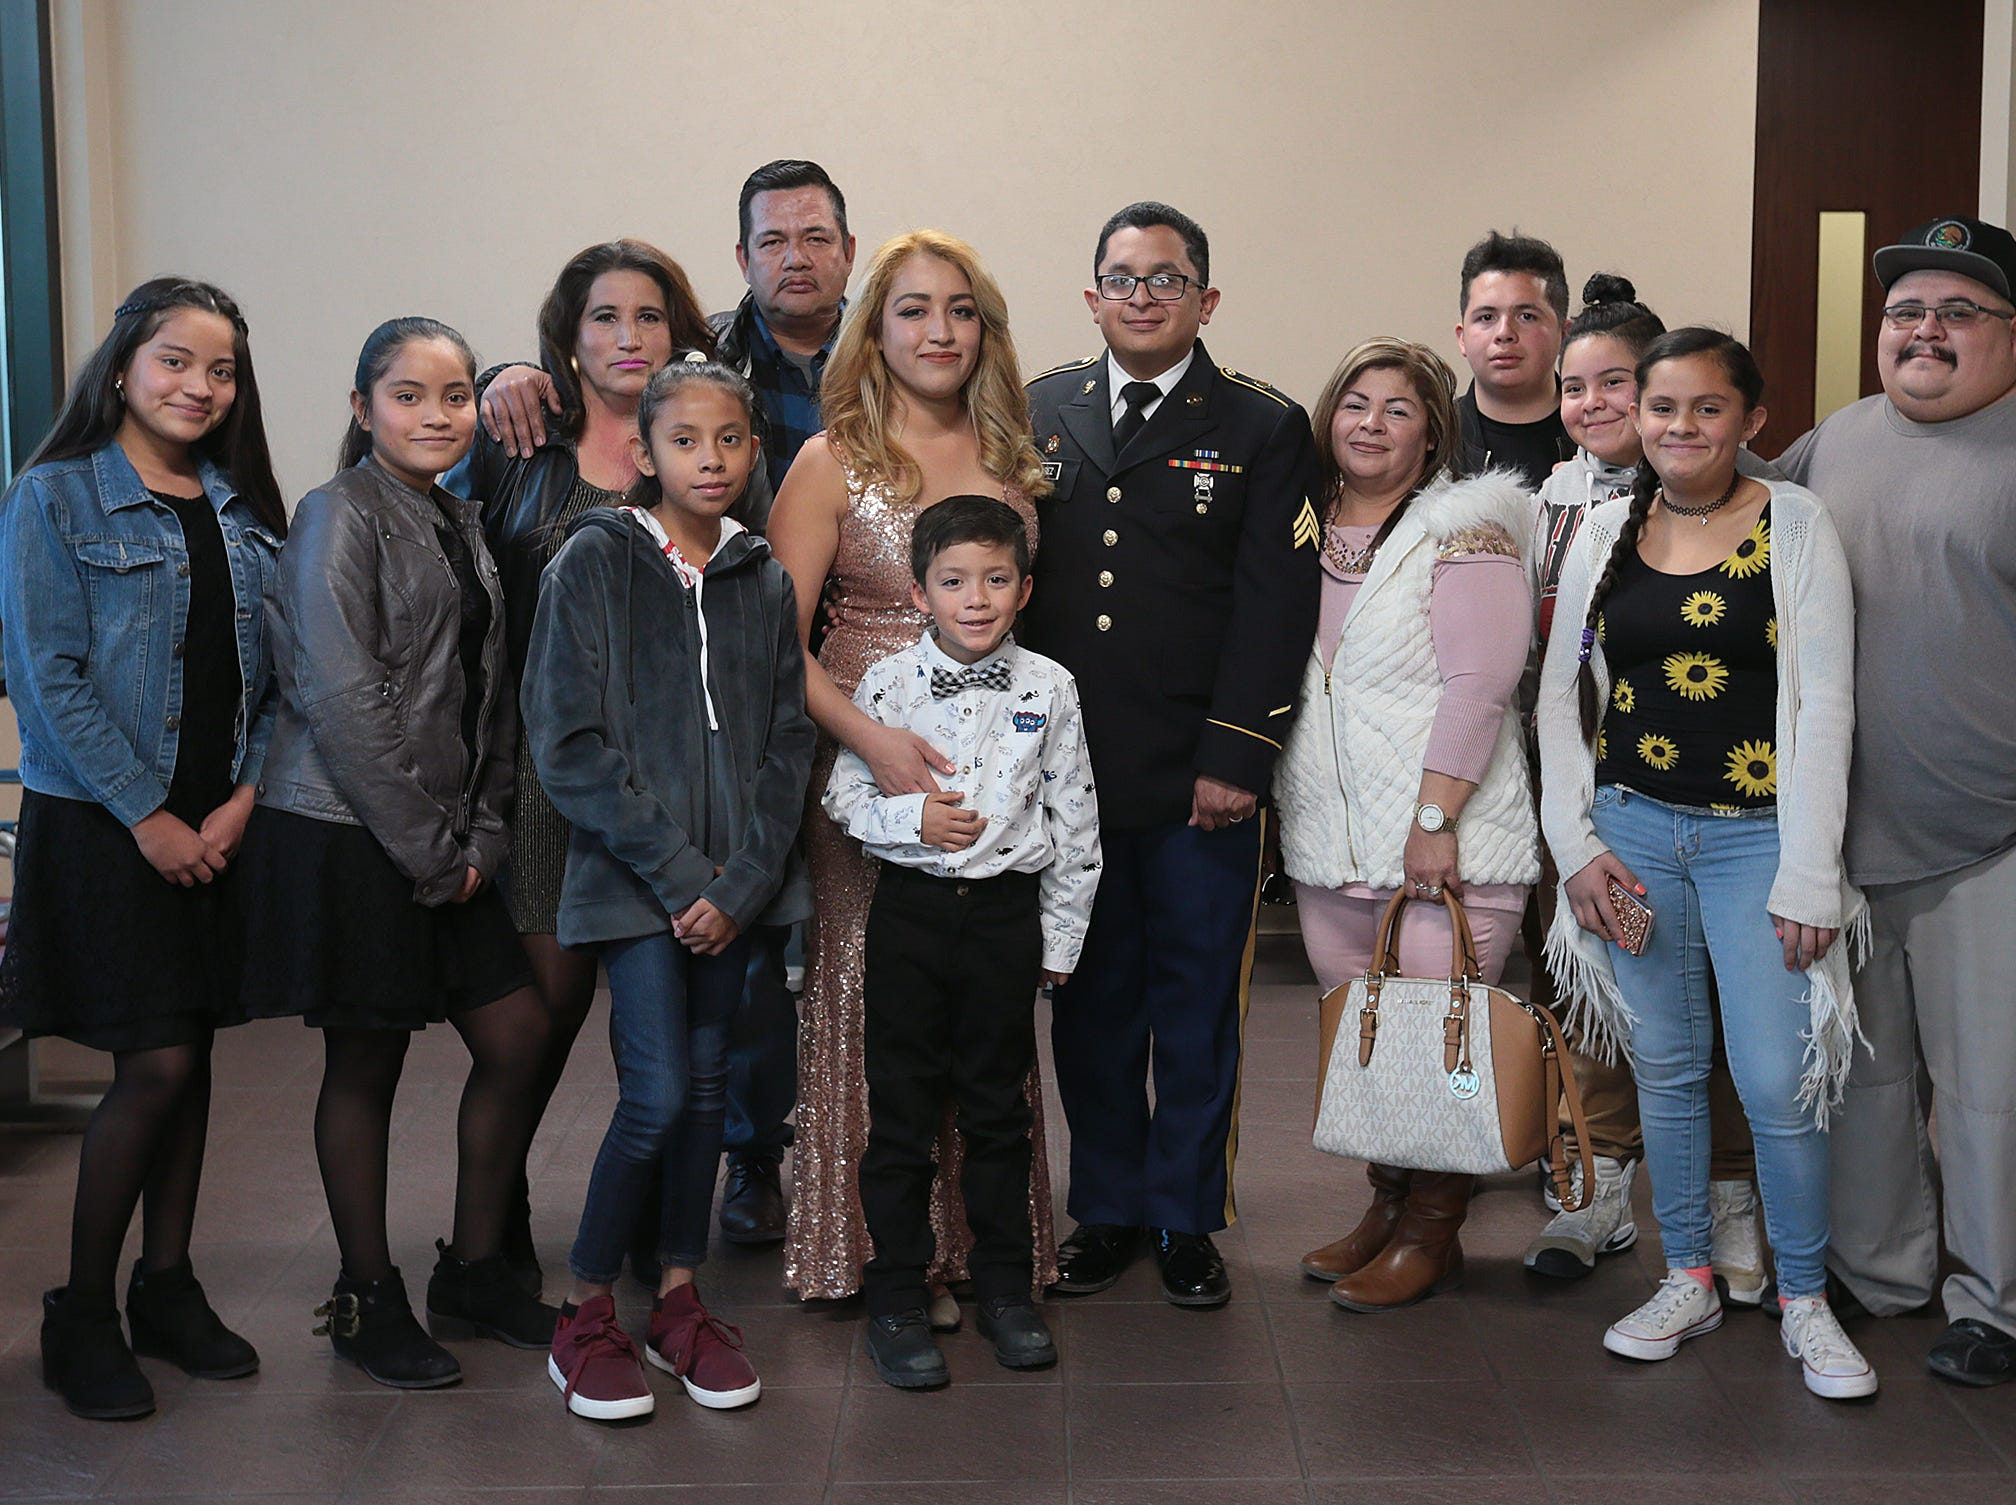 Judge Patrick Garcia marries Randy Juarez and Carla Perez as the jury deliberates in a murder trial in the 384th District Court Tuesday. Juarez is a mechanic with the New Mexico National Guard's 919th Military Police. Their families were present to witness the ceremony which took place in the judge's chambers.